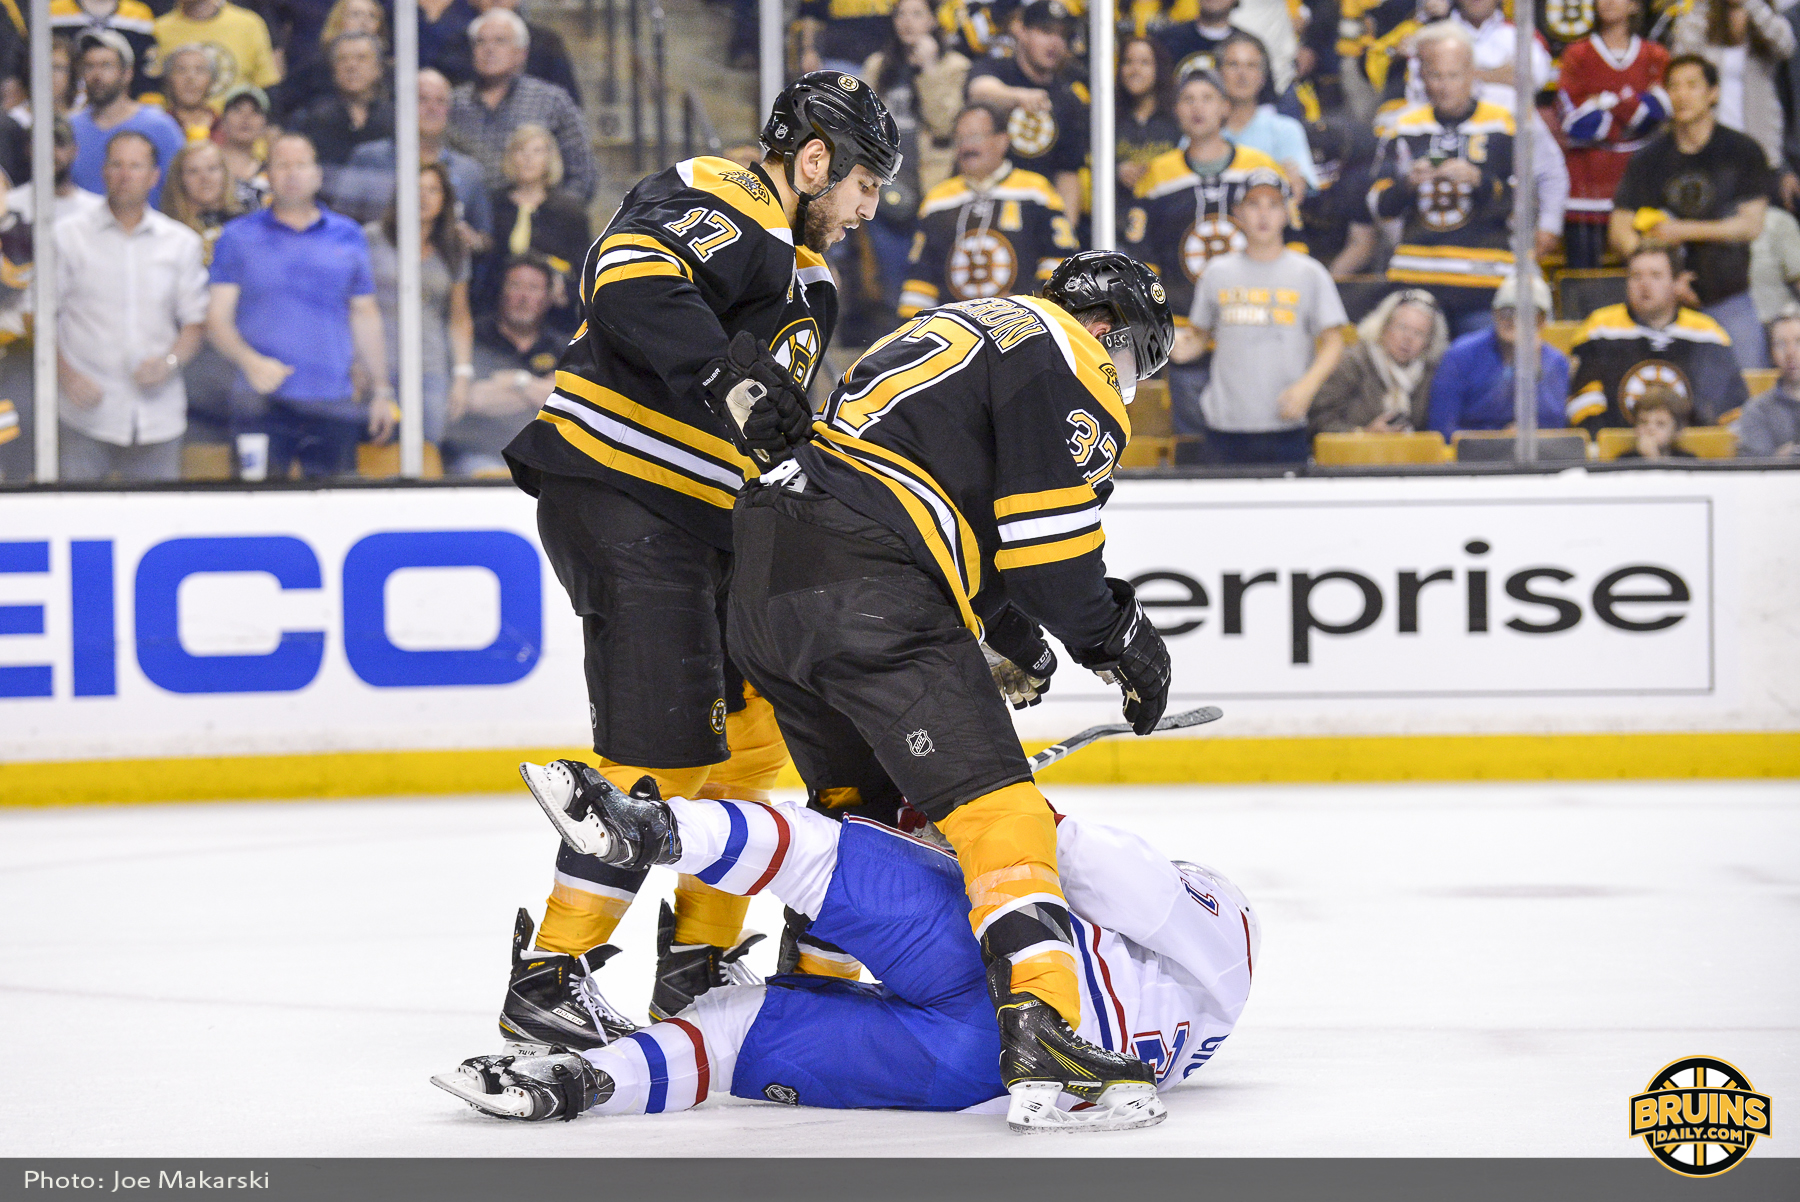 Bruins killer instinct 2.jpg